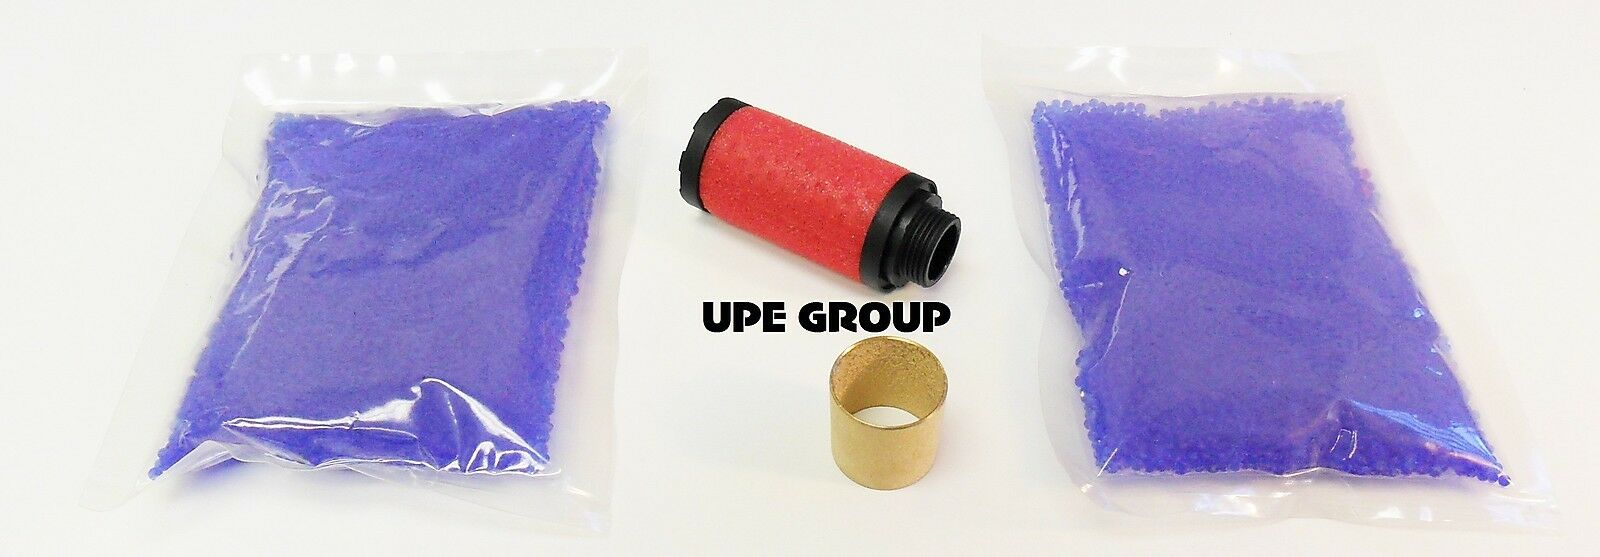 Replacement PARTICULATE Filter + COALESCING Filter + 2 Bags DESICCANT Beads